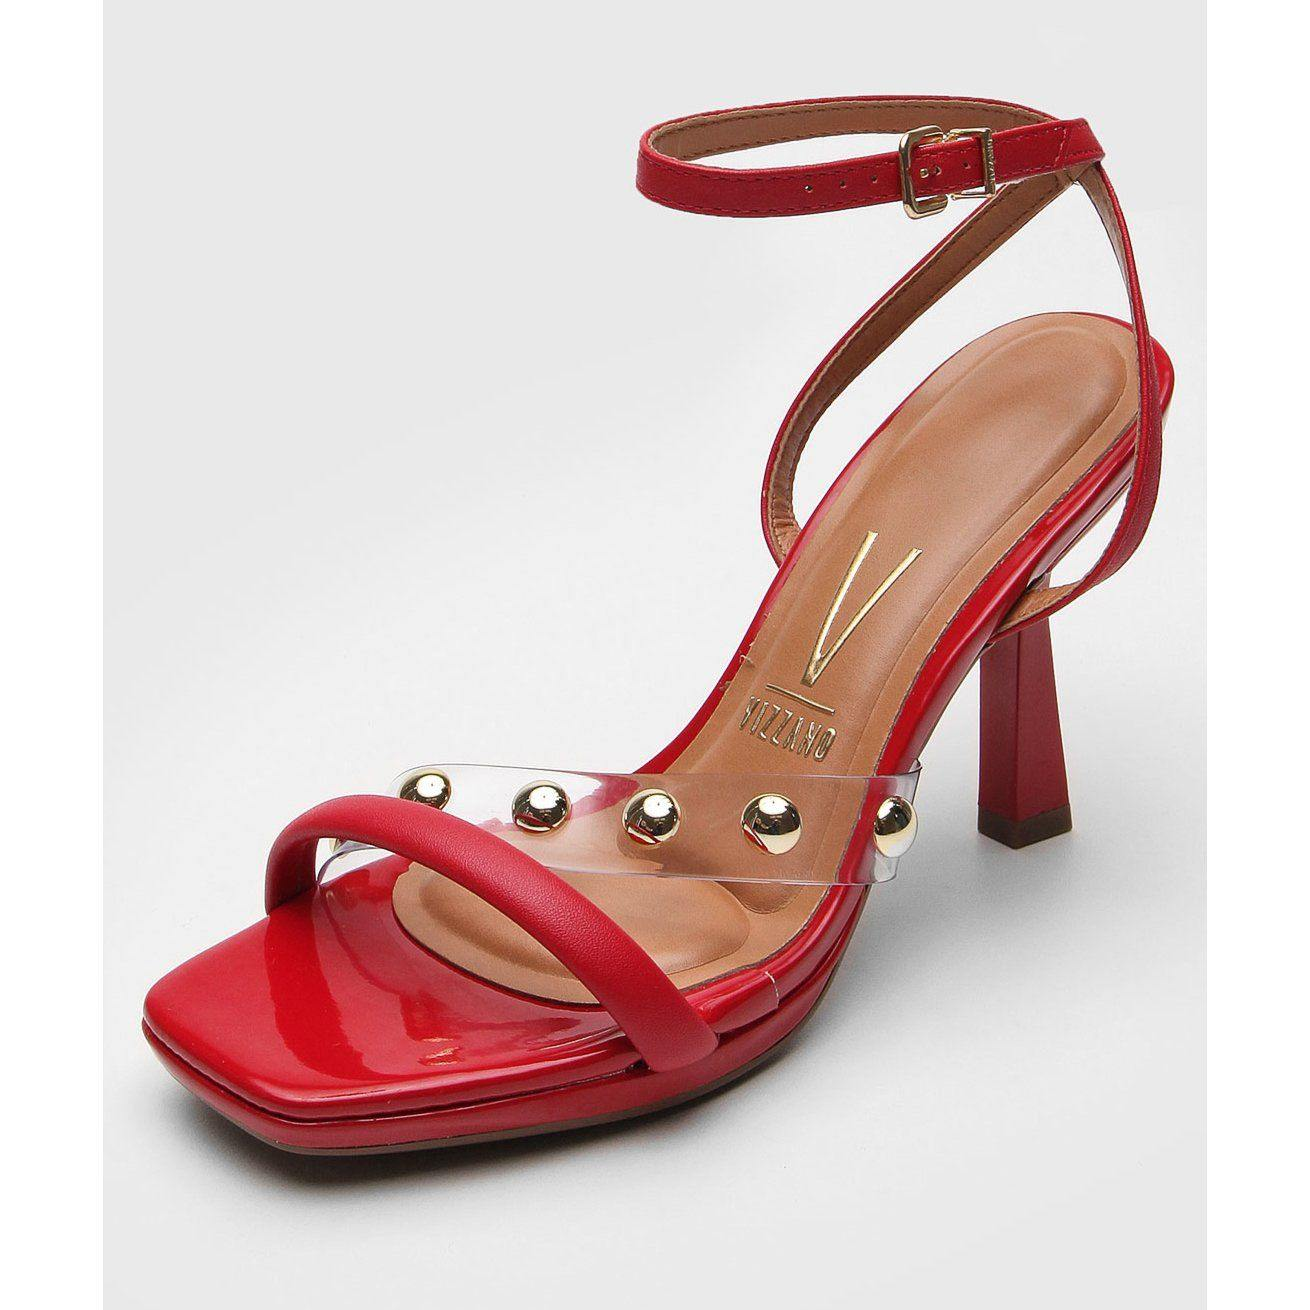 Vizzano 6437-103 High Heel Sandal in Red Napa